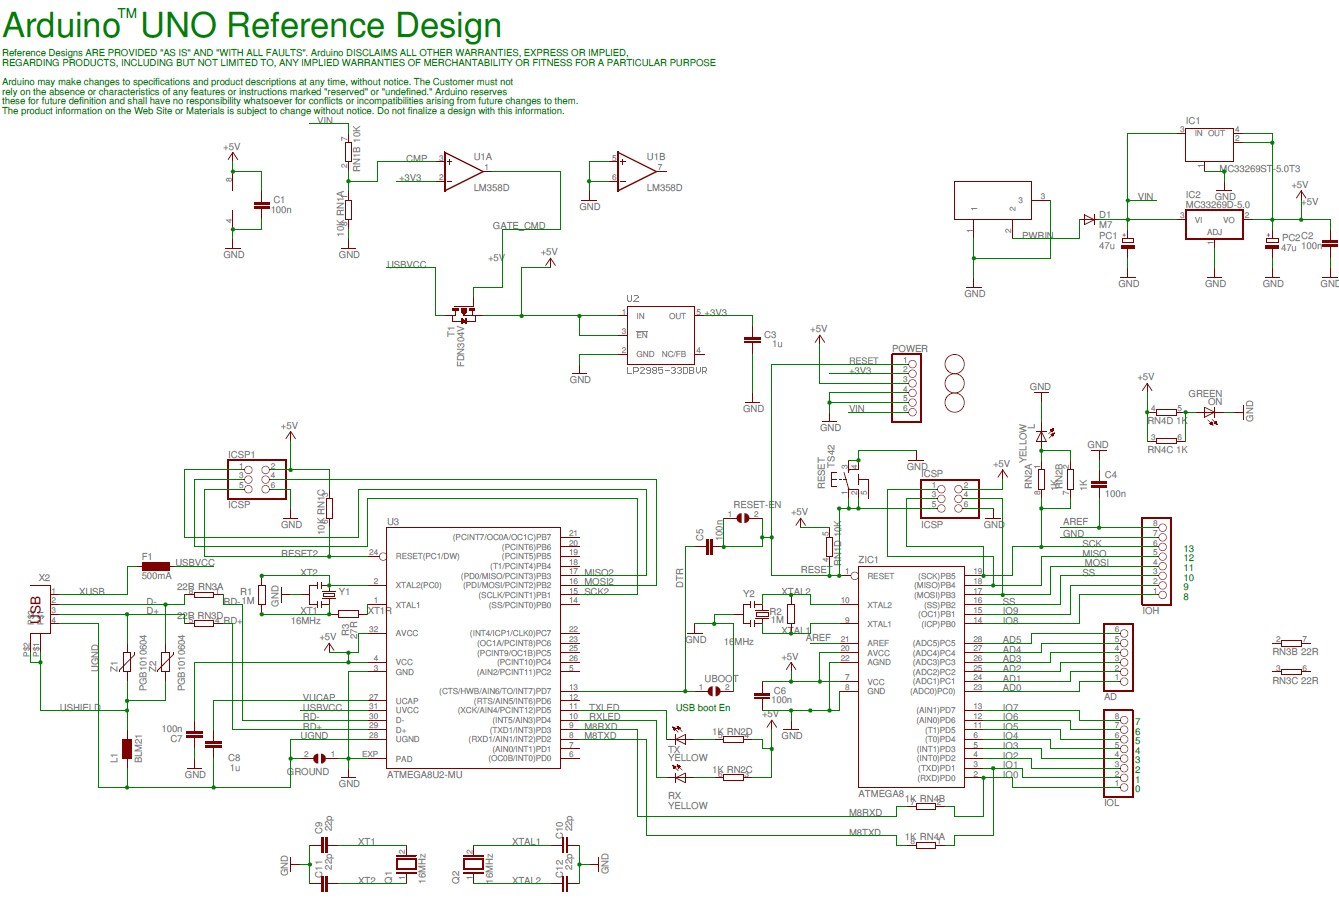 Arduino UNO | Electronic Schematic Diagram on free chart downloads, free infographic downloads, free report downloads, free model downloads, free map downloads, free visualization downloads, free user guide downloads, free cell downloads, free timeline downloads, free symbol downloads, free audio downloads, free digital downloads, free design downloads, free nashville downloads, free samsung downloads, free cad downloads, free 3d downloads, free hardware downloads, free drawing downloads, free tool downloads,